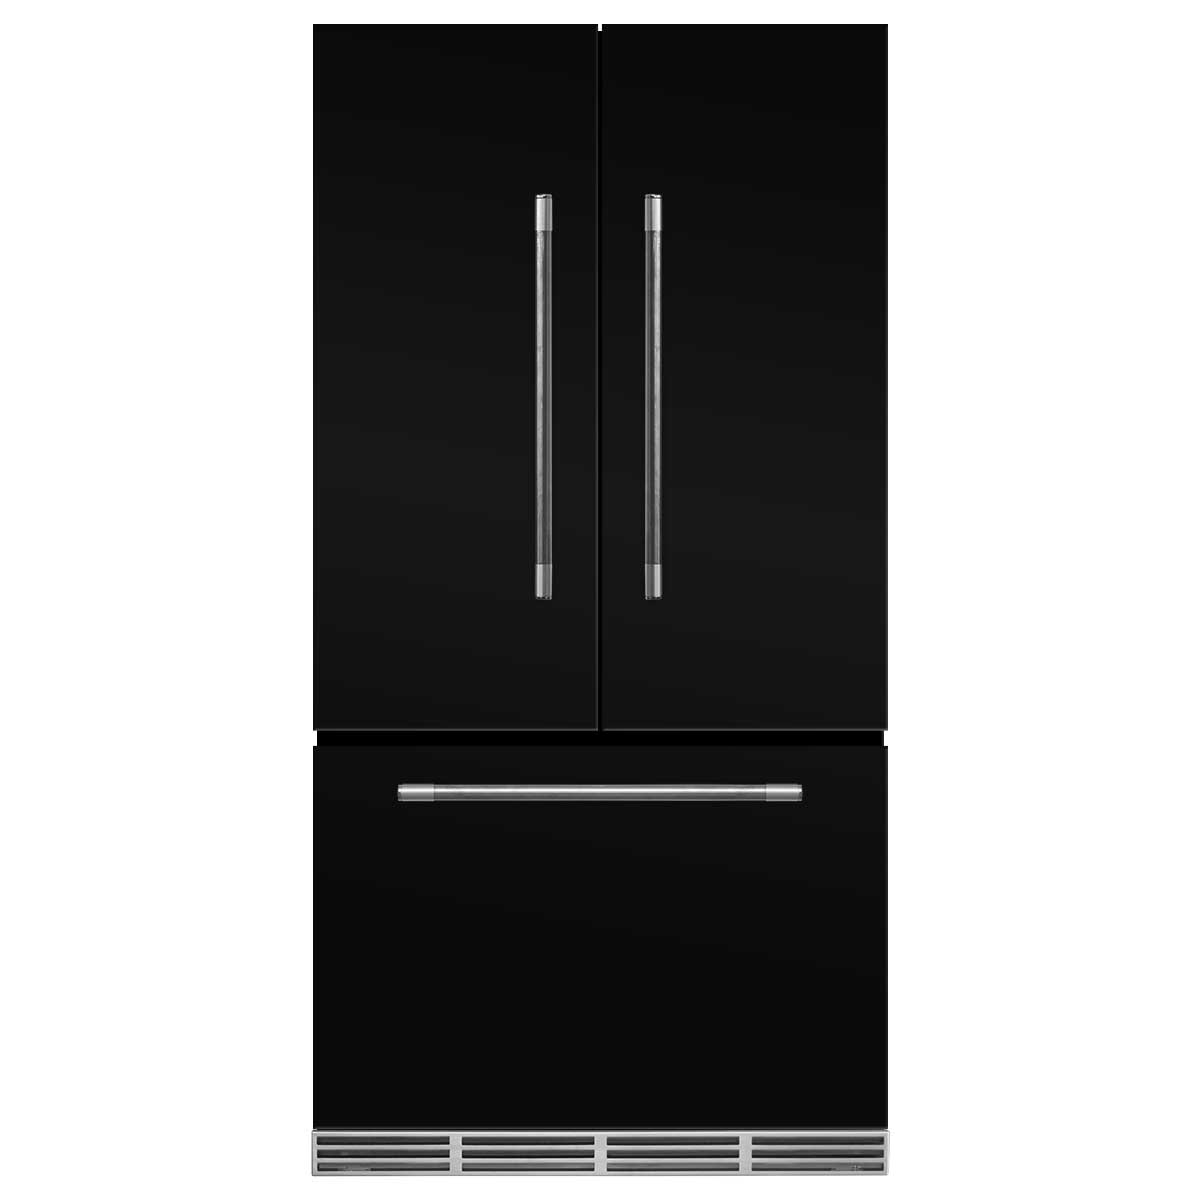 Marvel Mercury French Door Counter-Depth Refrigerator- Marvel Mercury French Door Refrigerator White